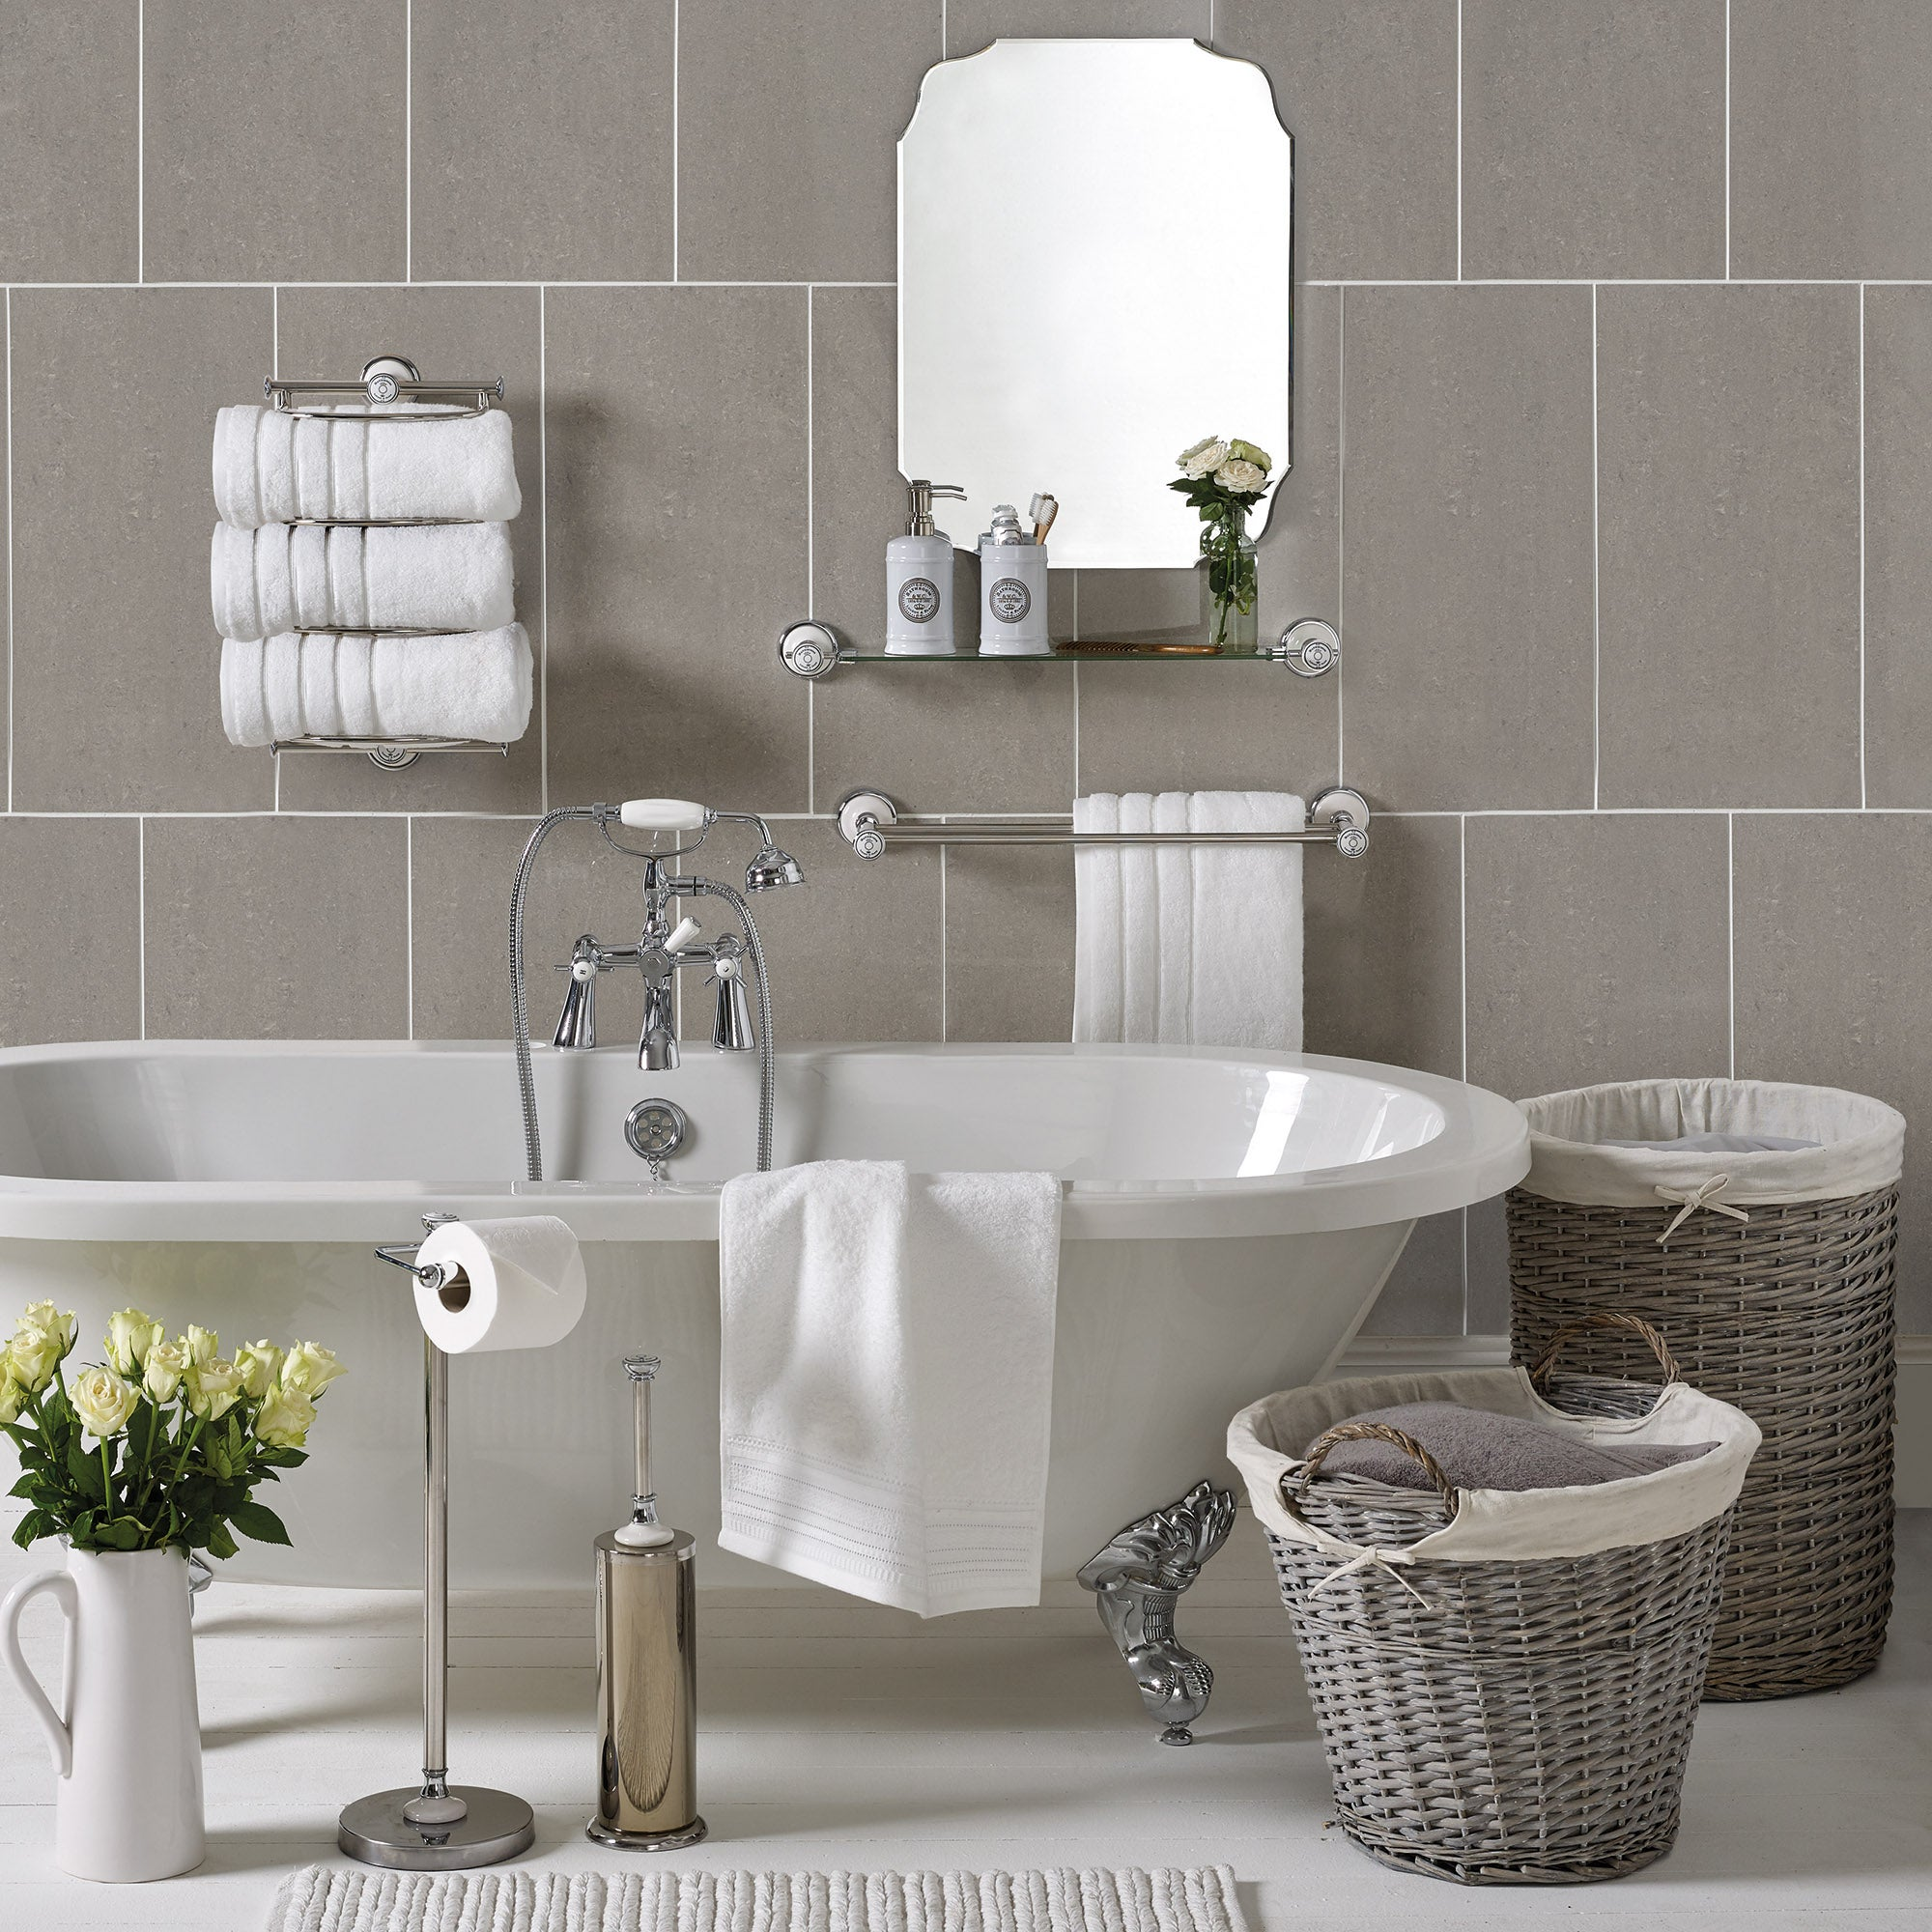 Share Vintage Bathroom Collection